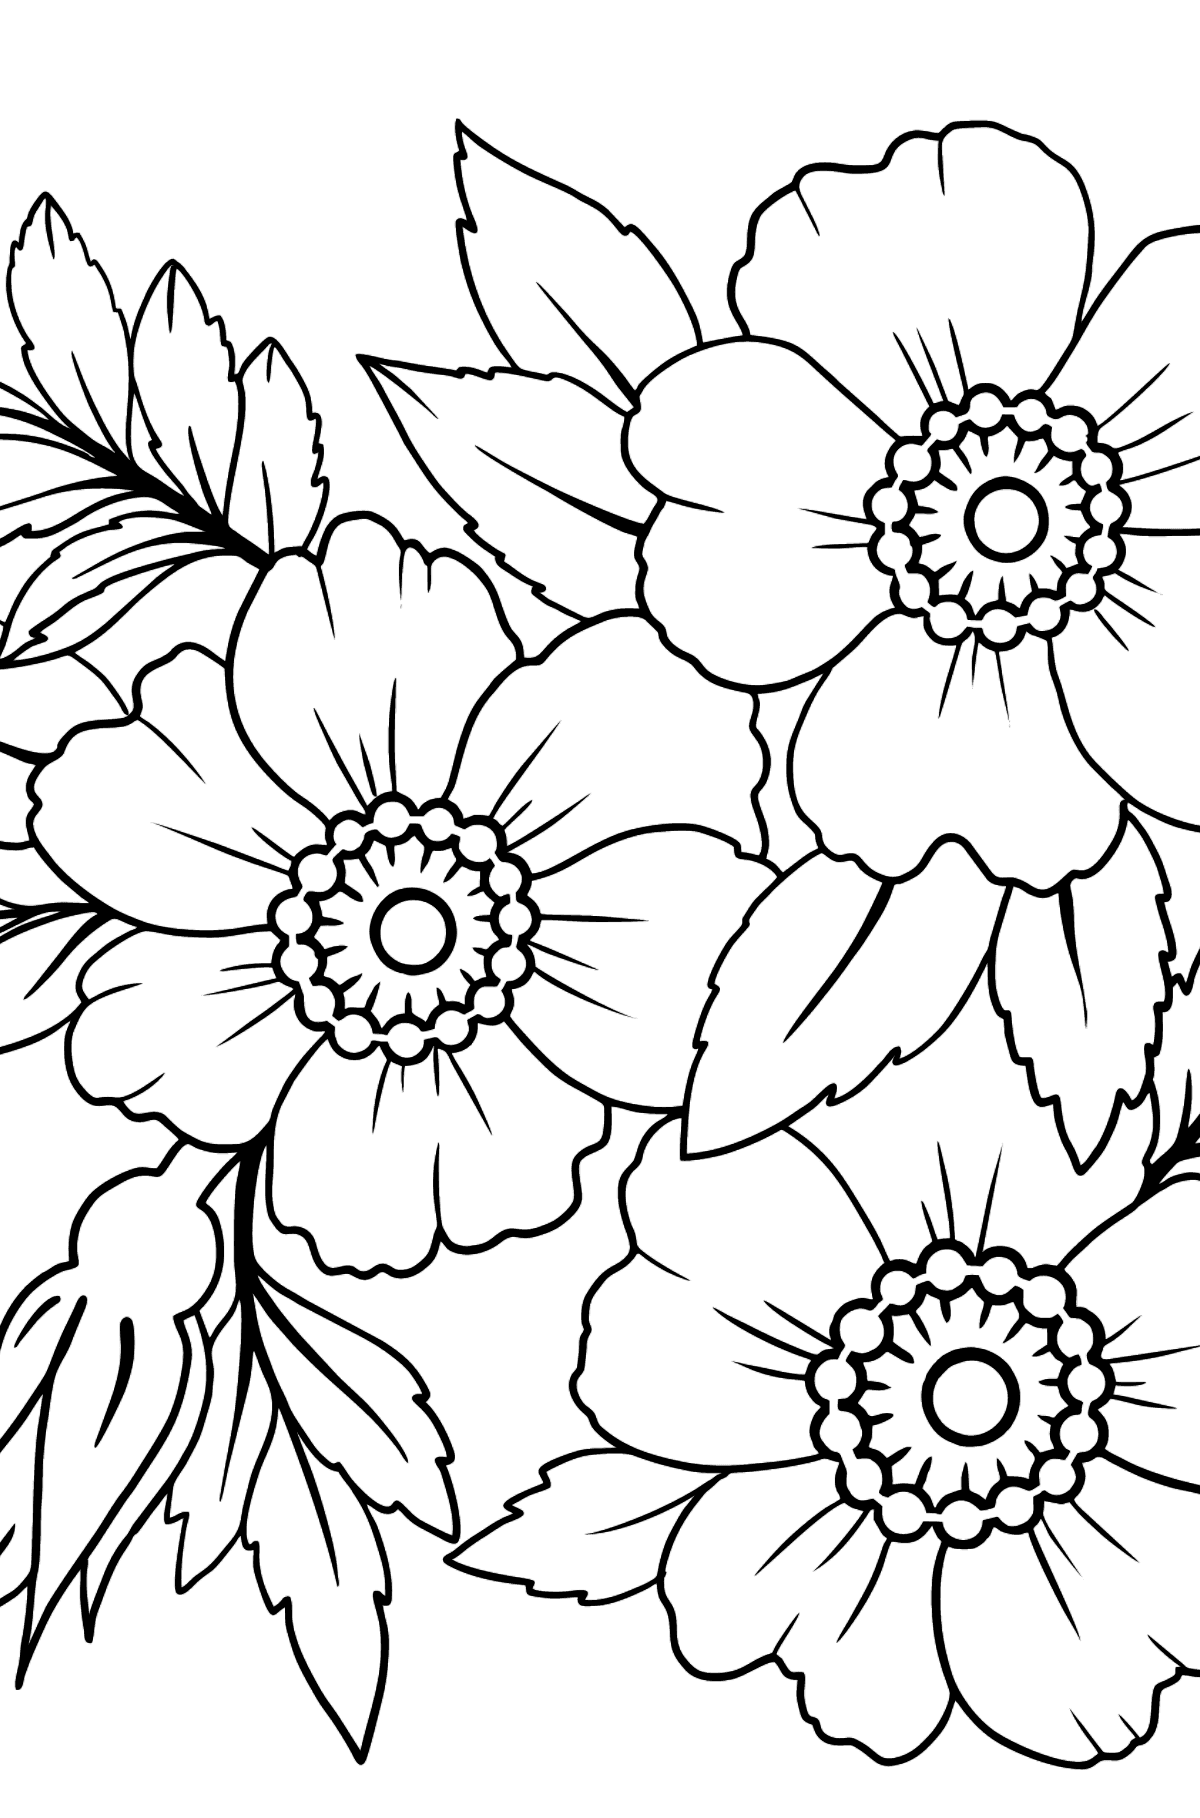 Flower Coloring Page - Japanese Anemone - Coloring Pages for Kids